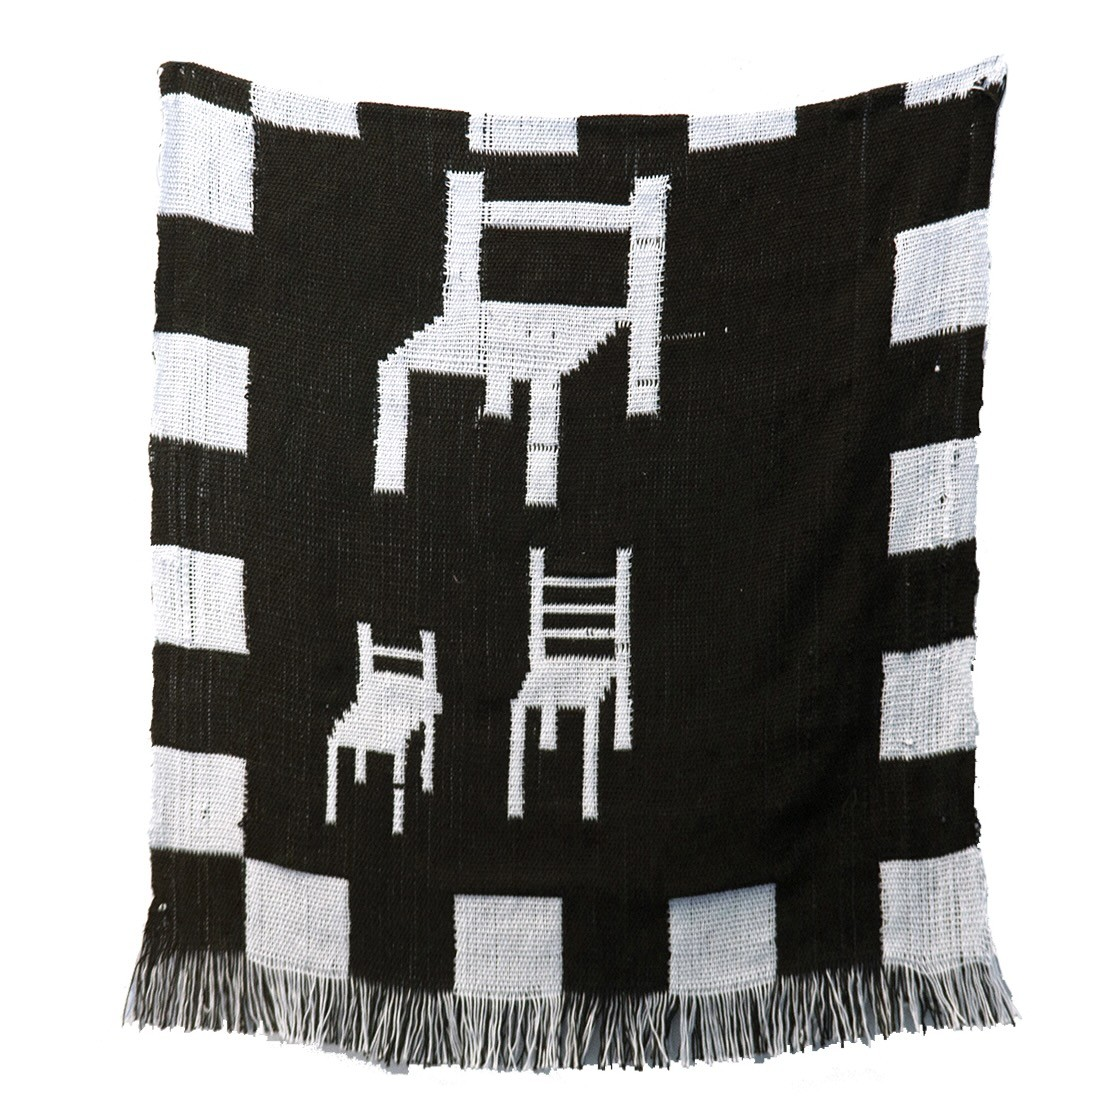 A black and white weaving set against a white background. A black and white checkerboard pattern runs along the edges of the weaving. In the center, three simple renderings of white chairs are set against a black field. Two inches of black and white fring